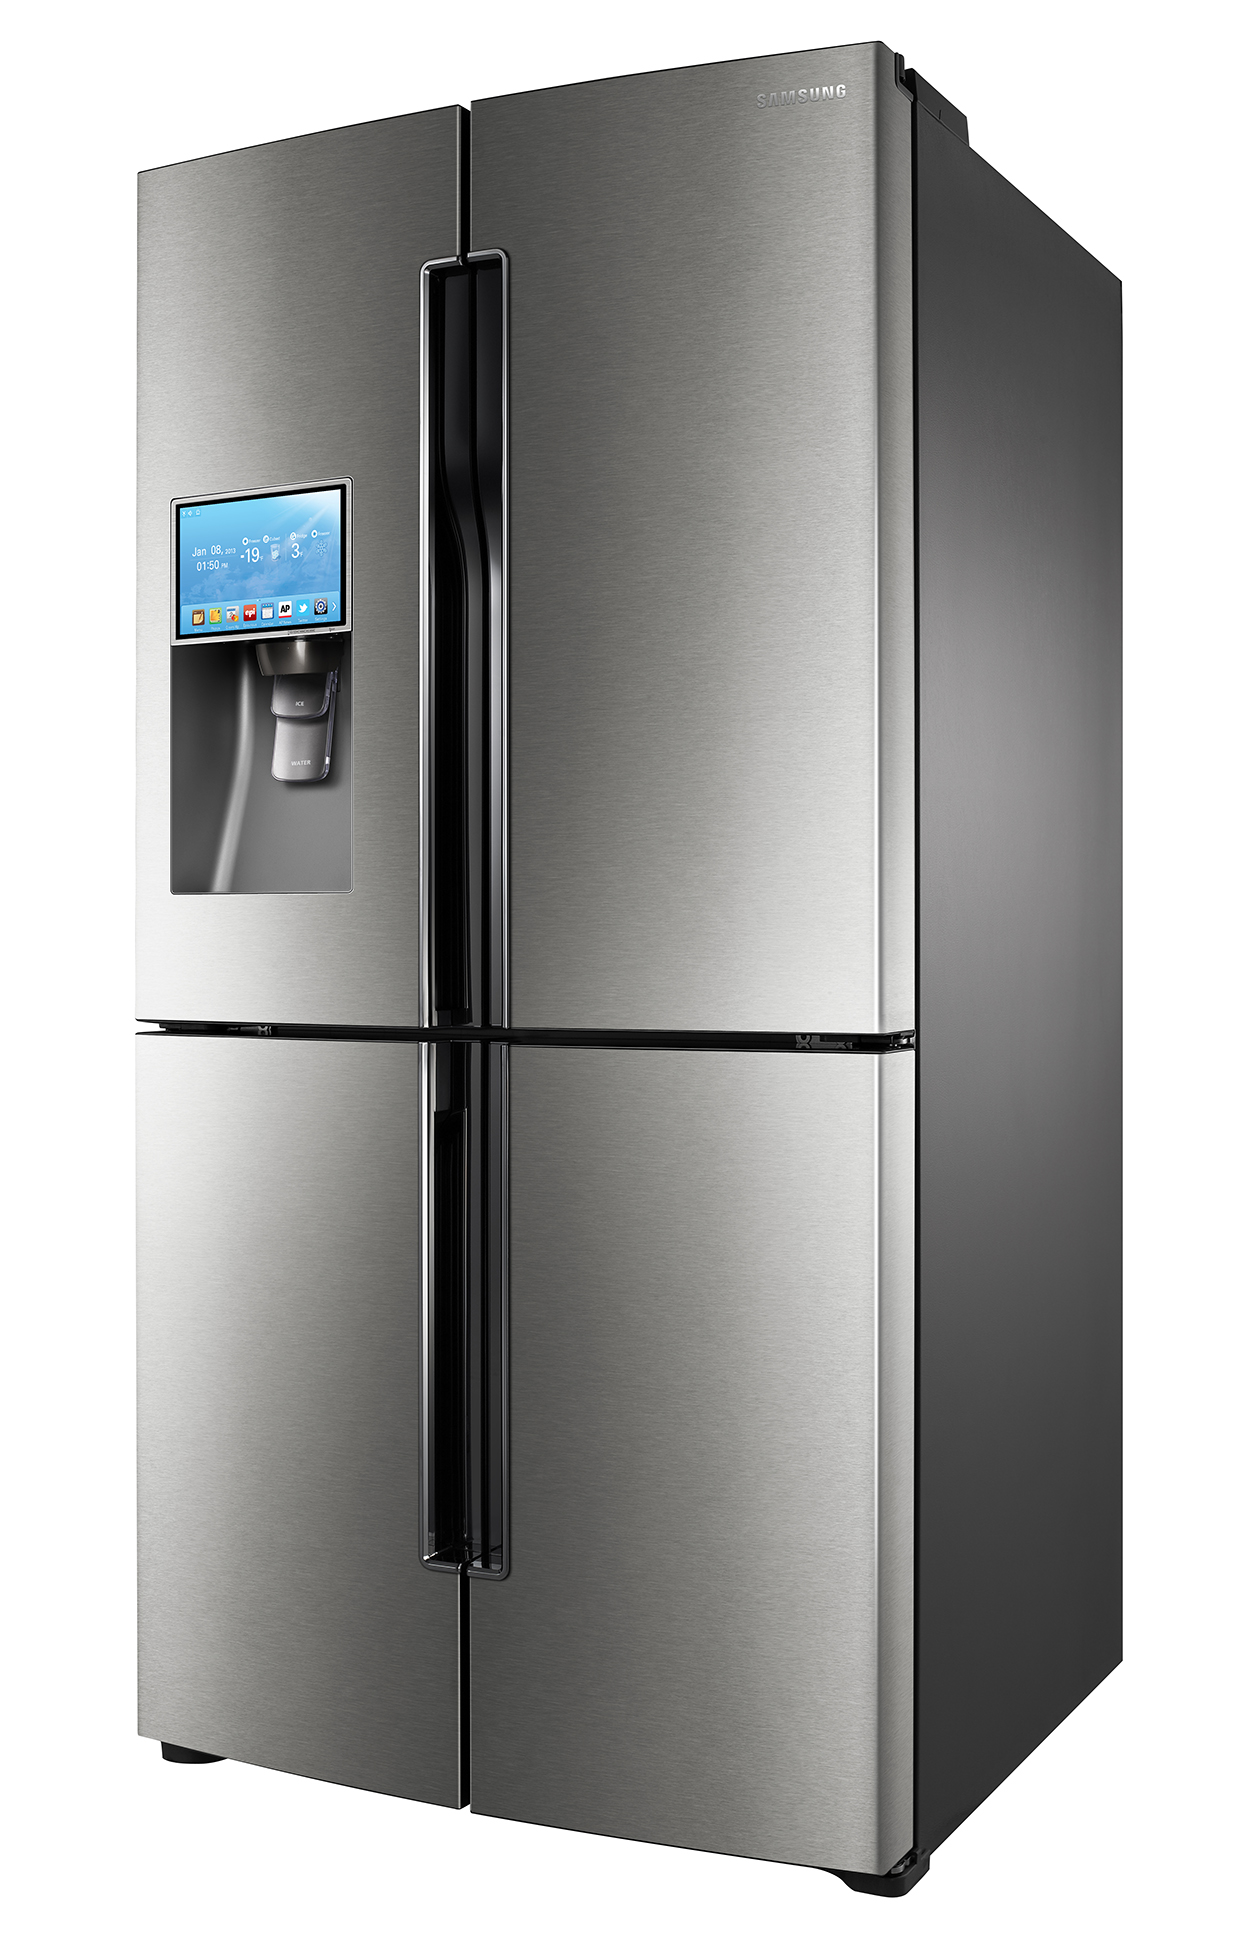 image gallery samsung refrigerator. Black Bedroom Furniture Sets. Home Design Ideas